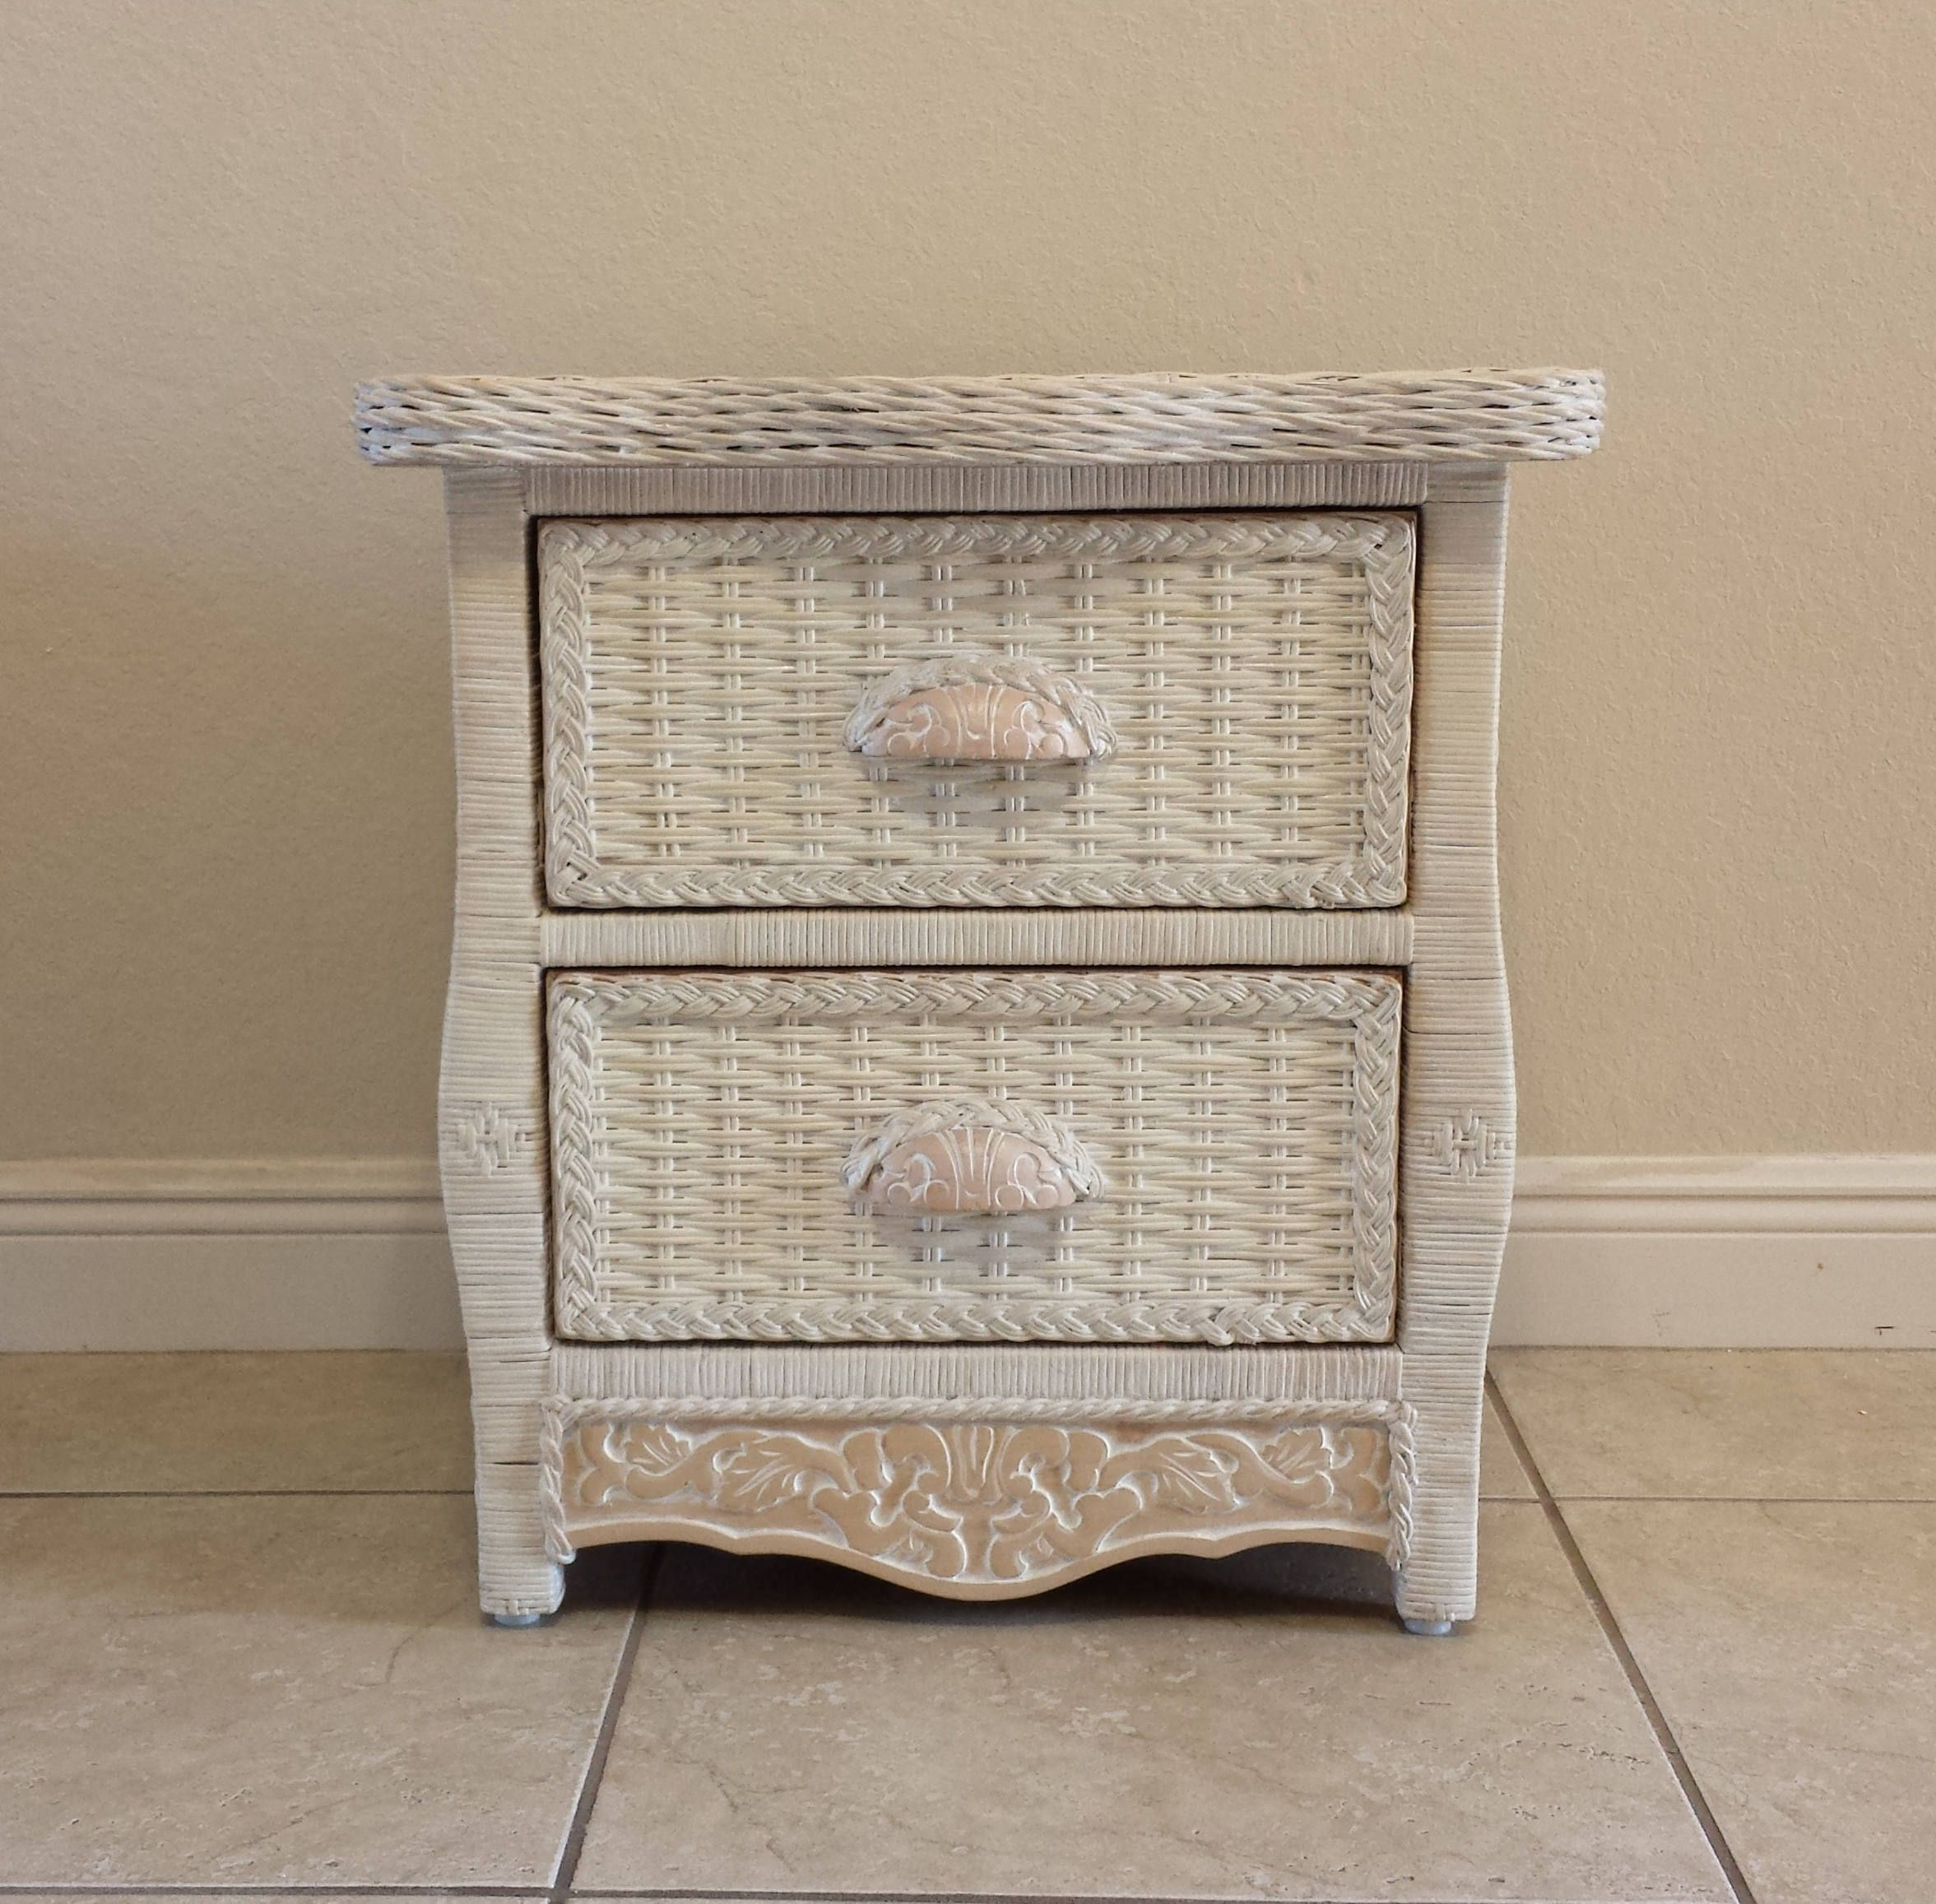 Wicker Rattan Nightstand Cottage Shabby Chic Bed Table Jamaica Imports Pier One Wicker Bedroom Furniture White Wicker Bedroom Furniture Wicker Bedroom